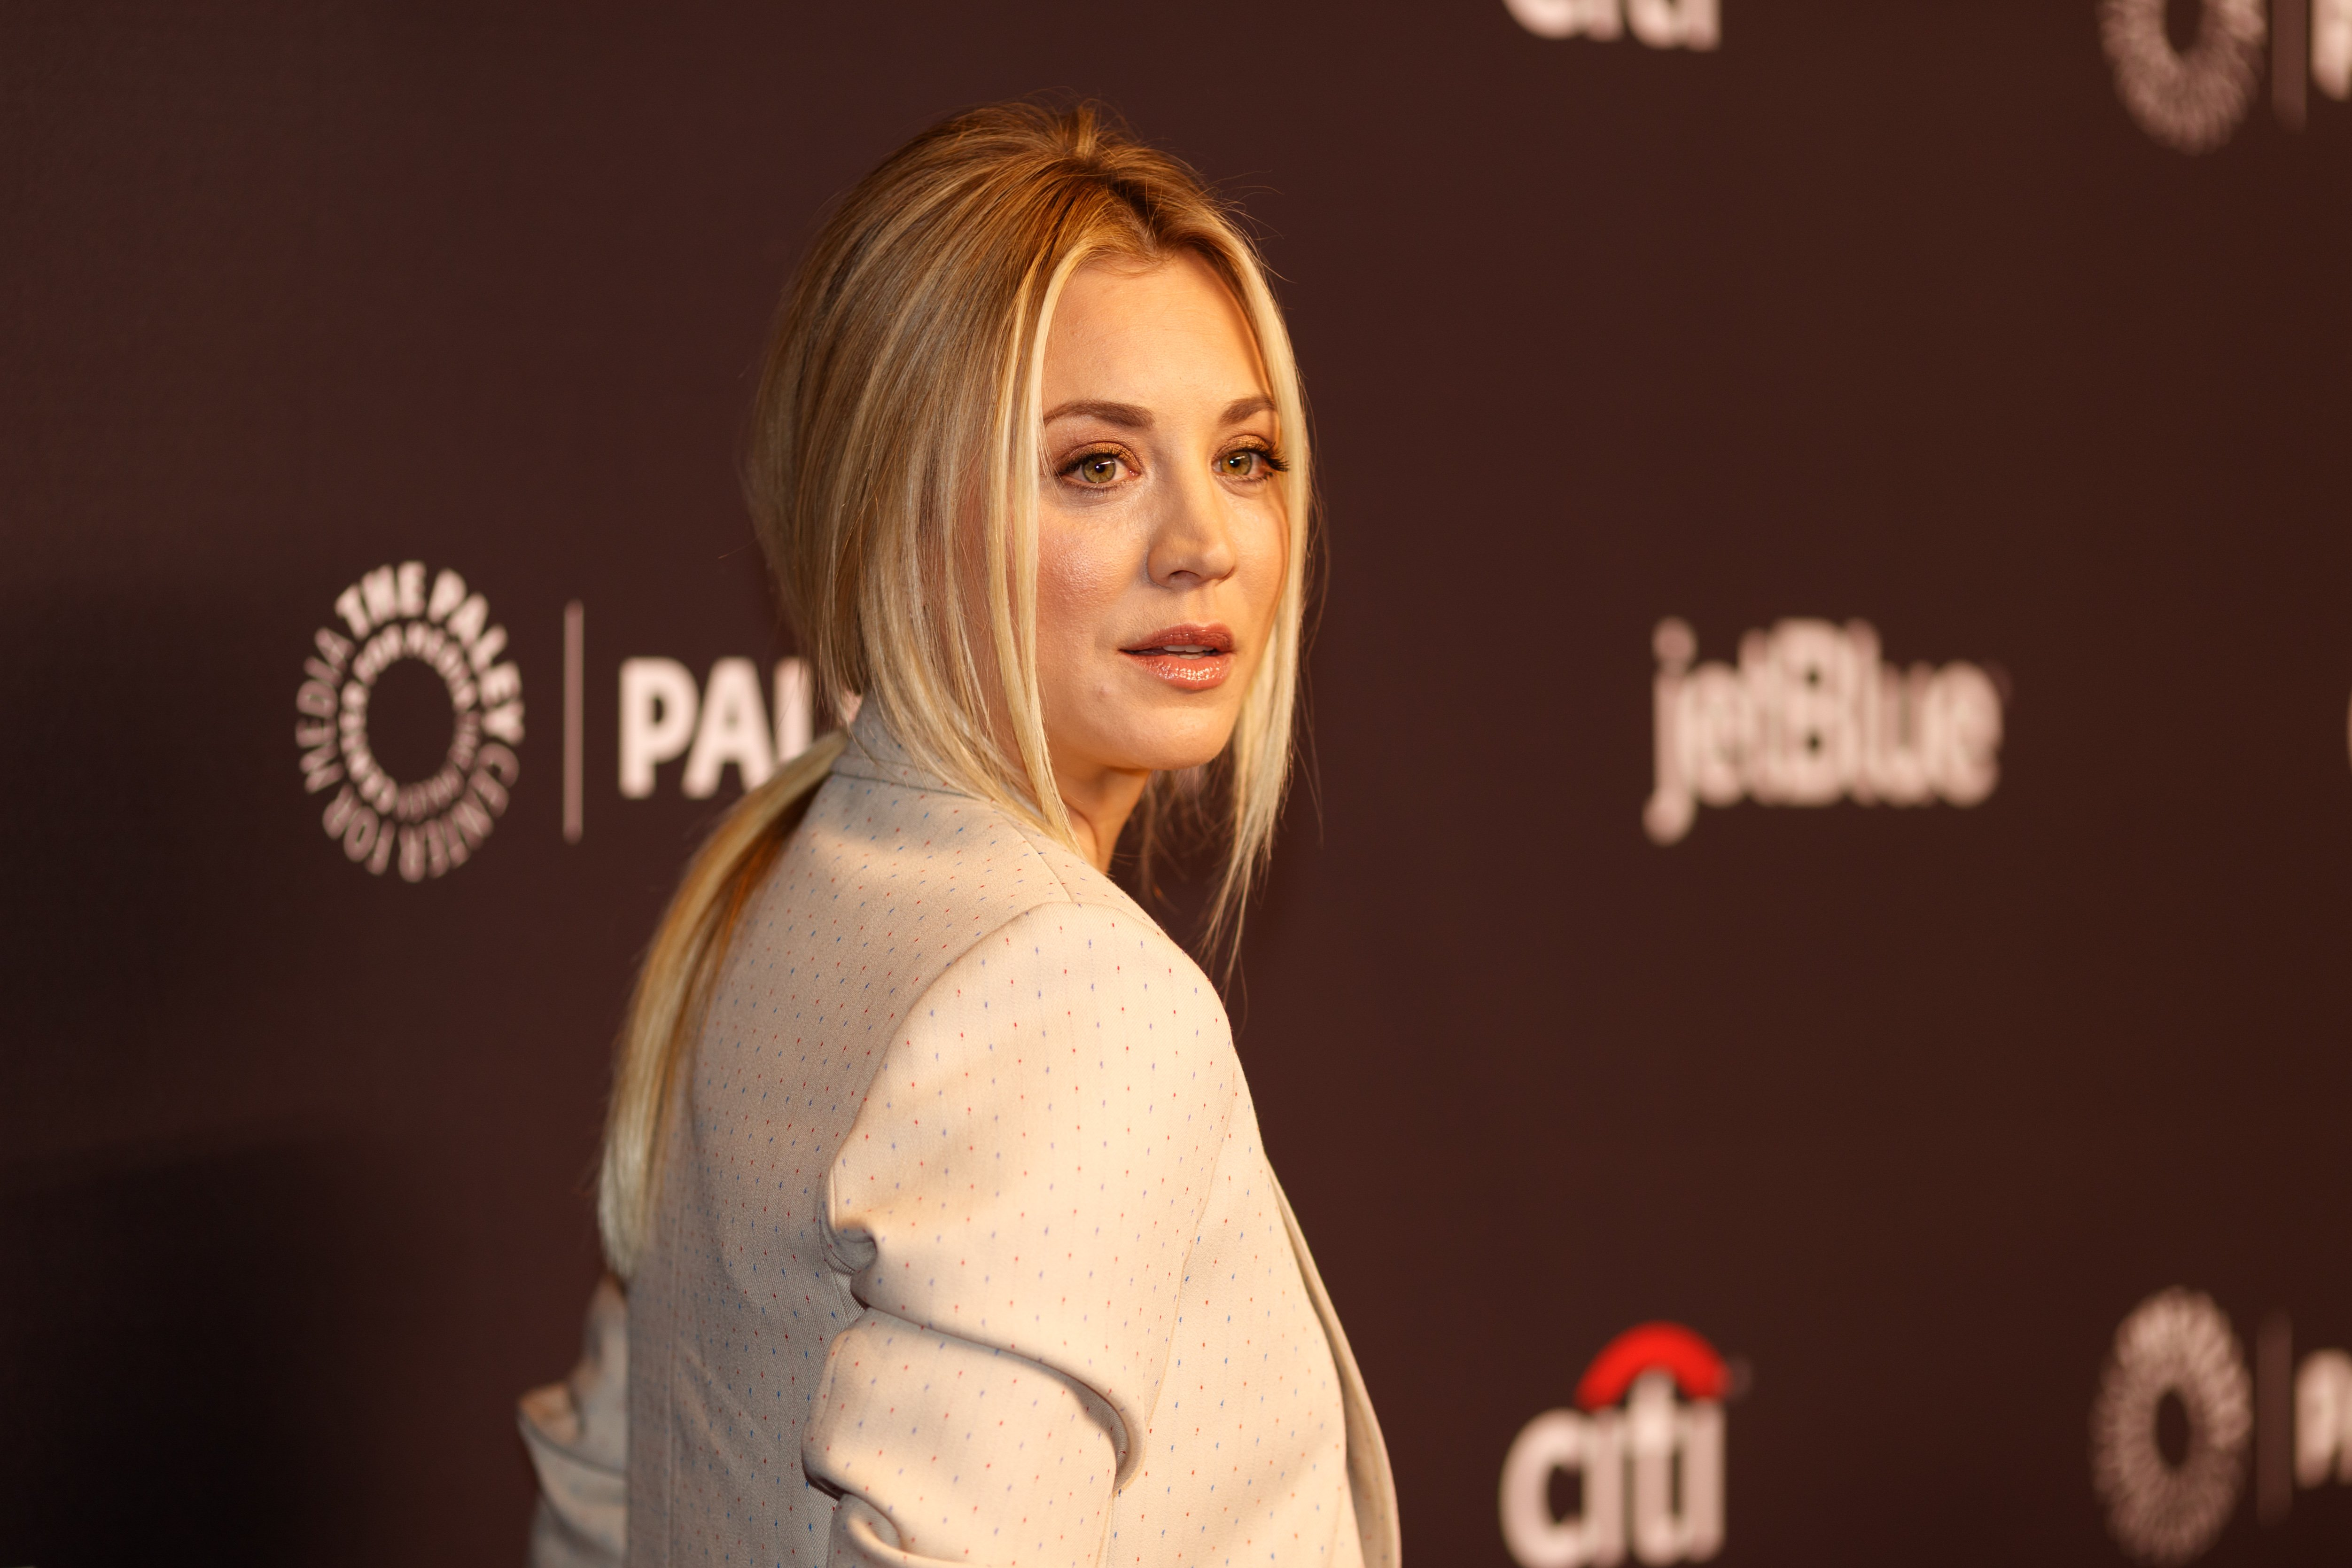 Kaley Cuoco attends the 2018 PaleyFest Los Angeles on March 21, 2018 in Hollywood, California   Photo: Getty Images